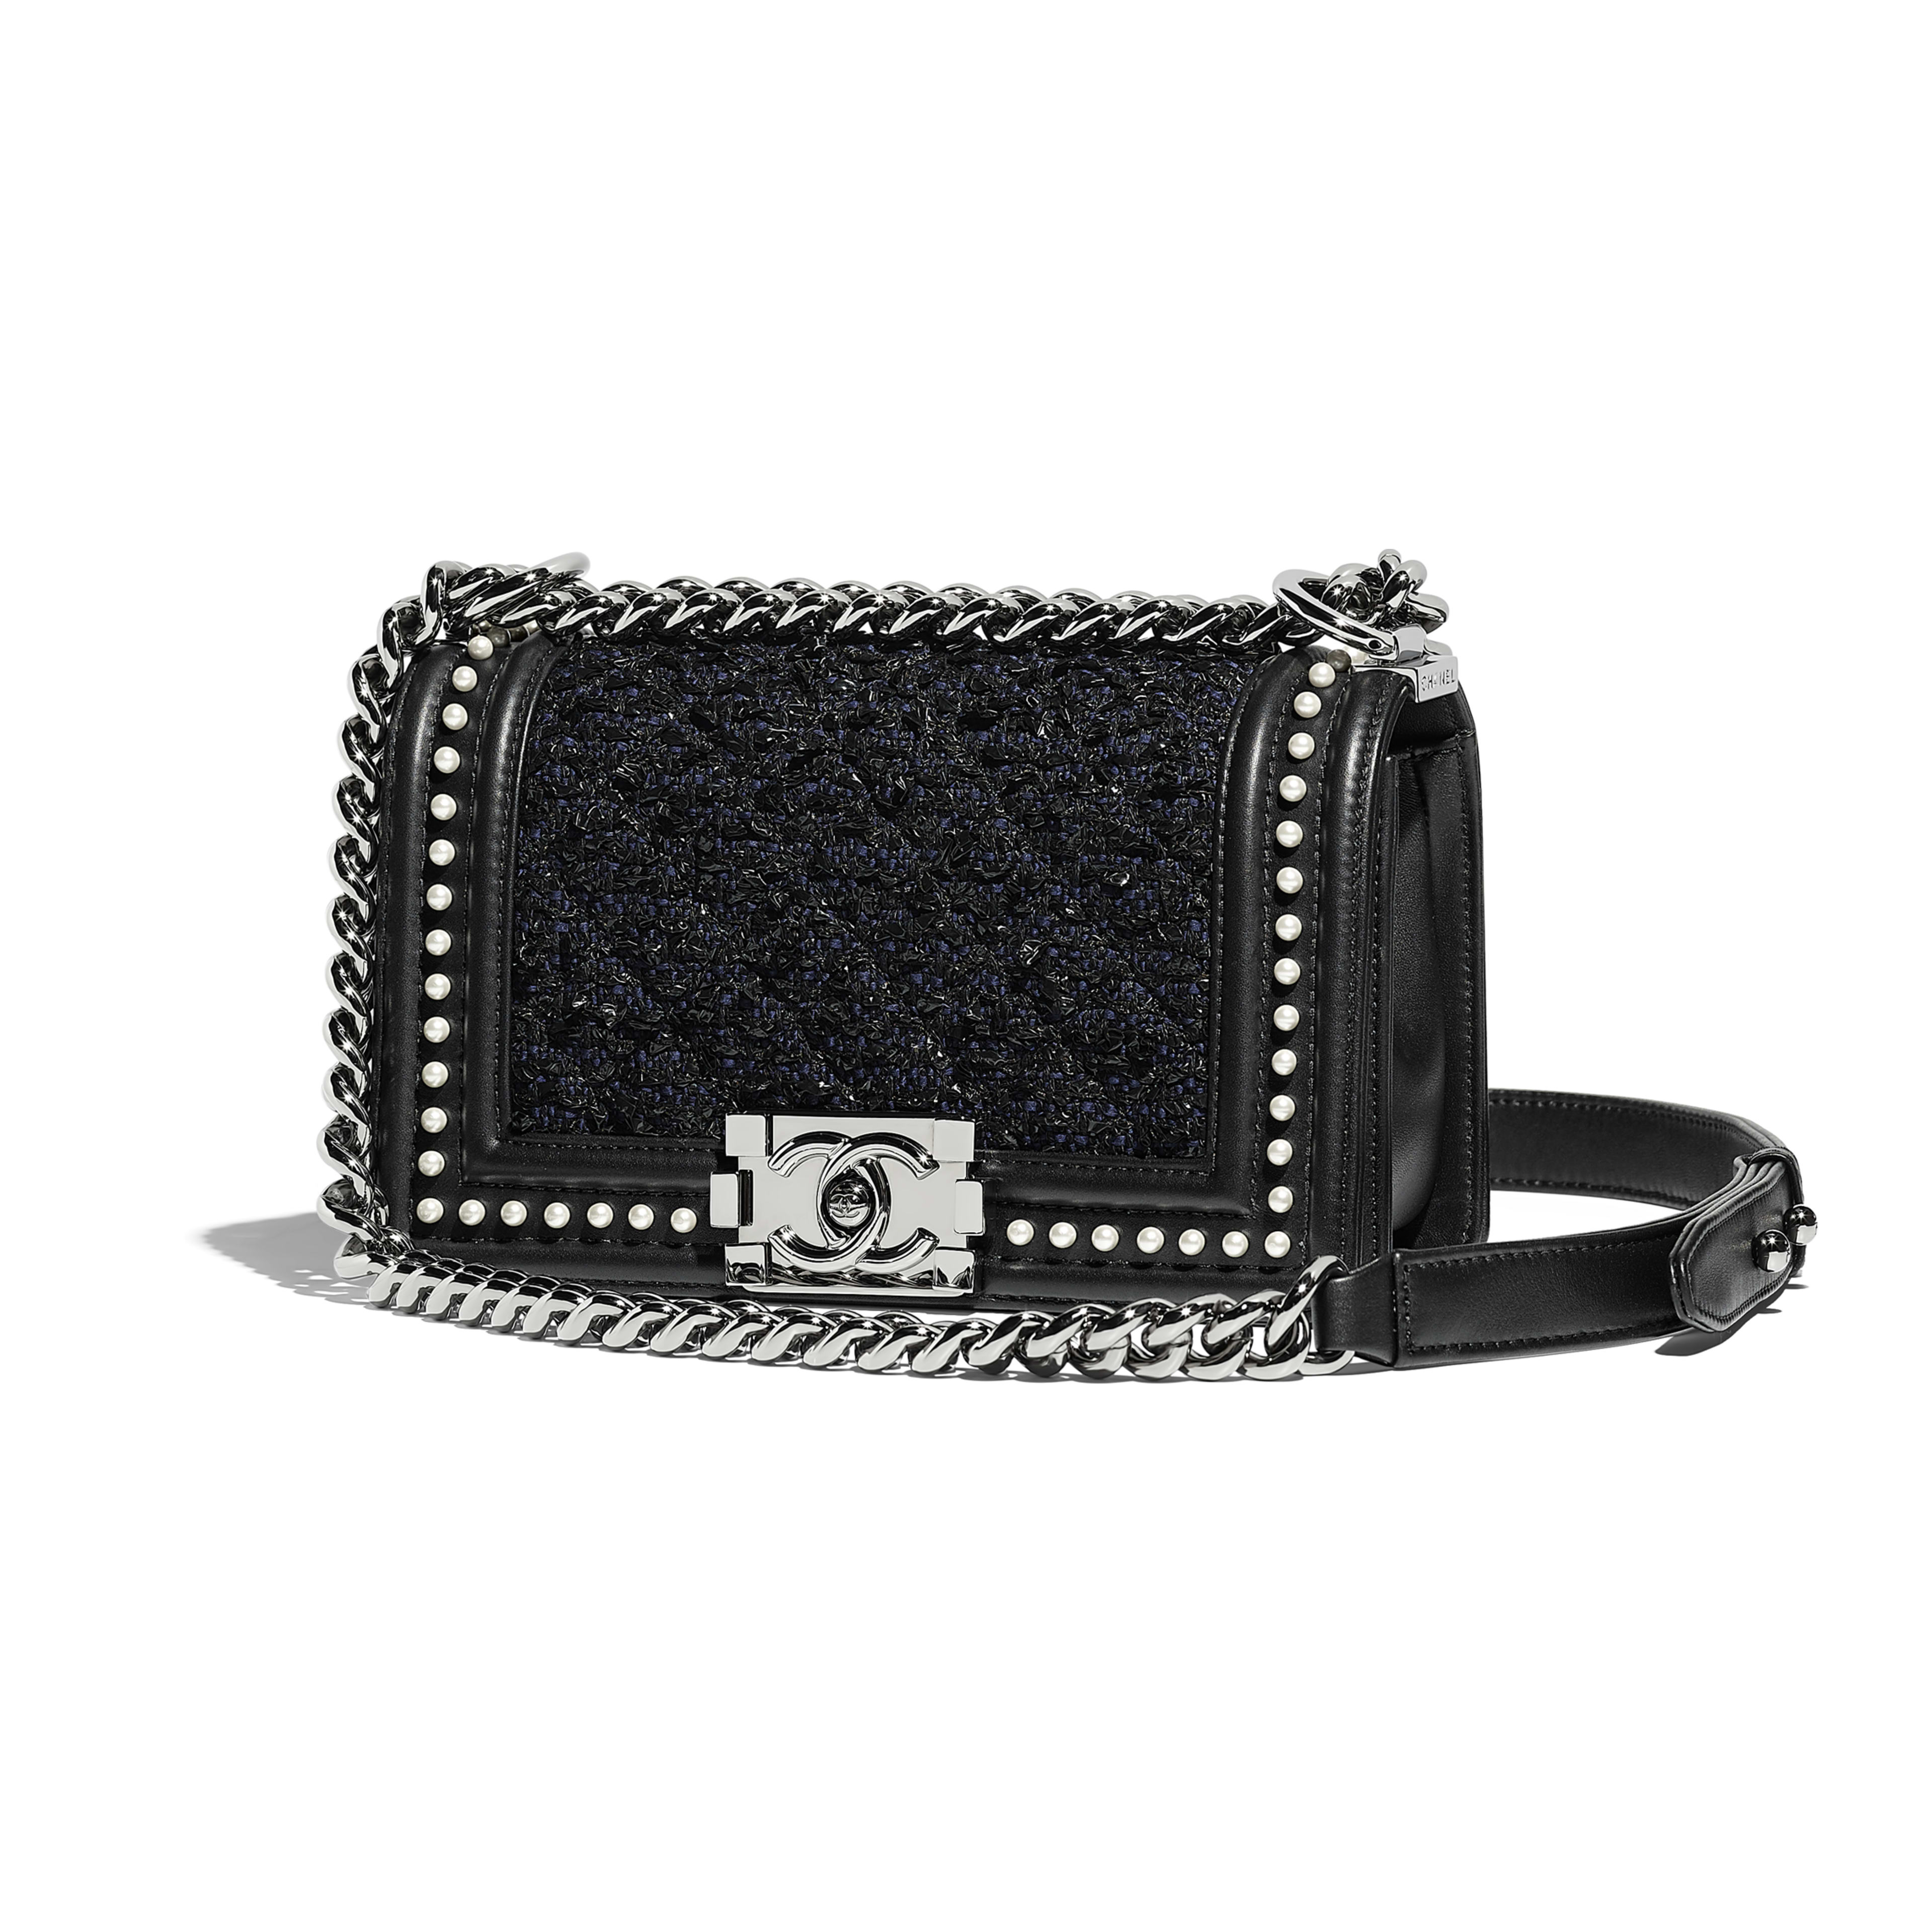 acd3ada495d4 Tweed Calfskin Imitation Pearls Ruthenium Finish Metal Black. Chanel Boy  Bag Small Black Blazer ...